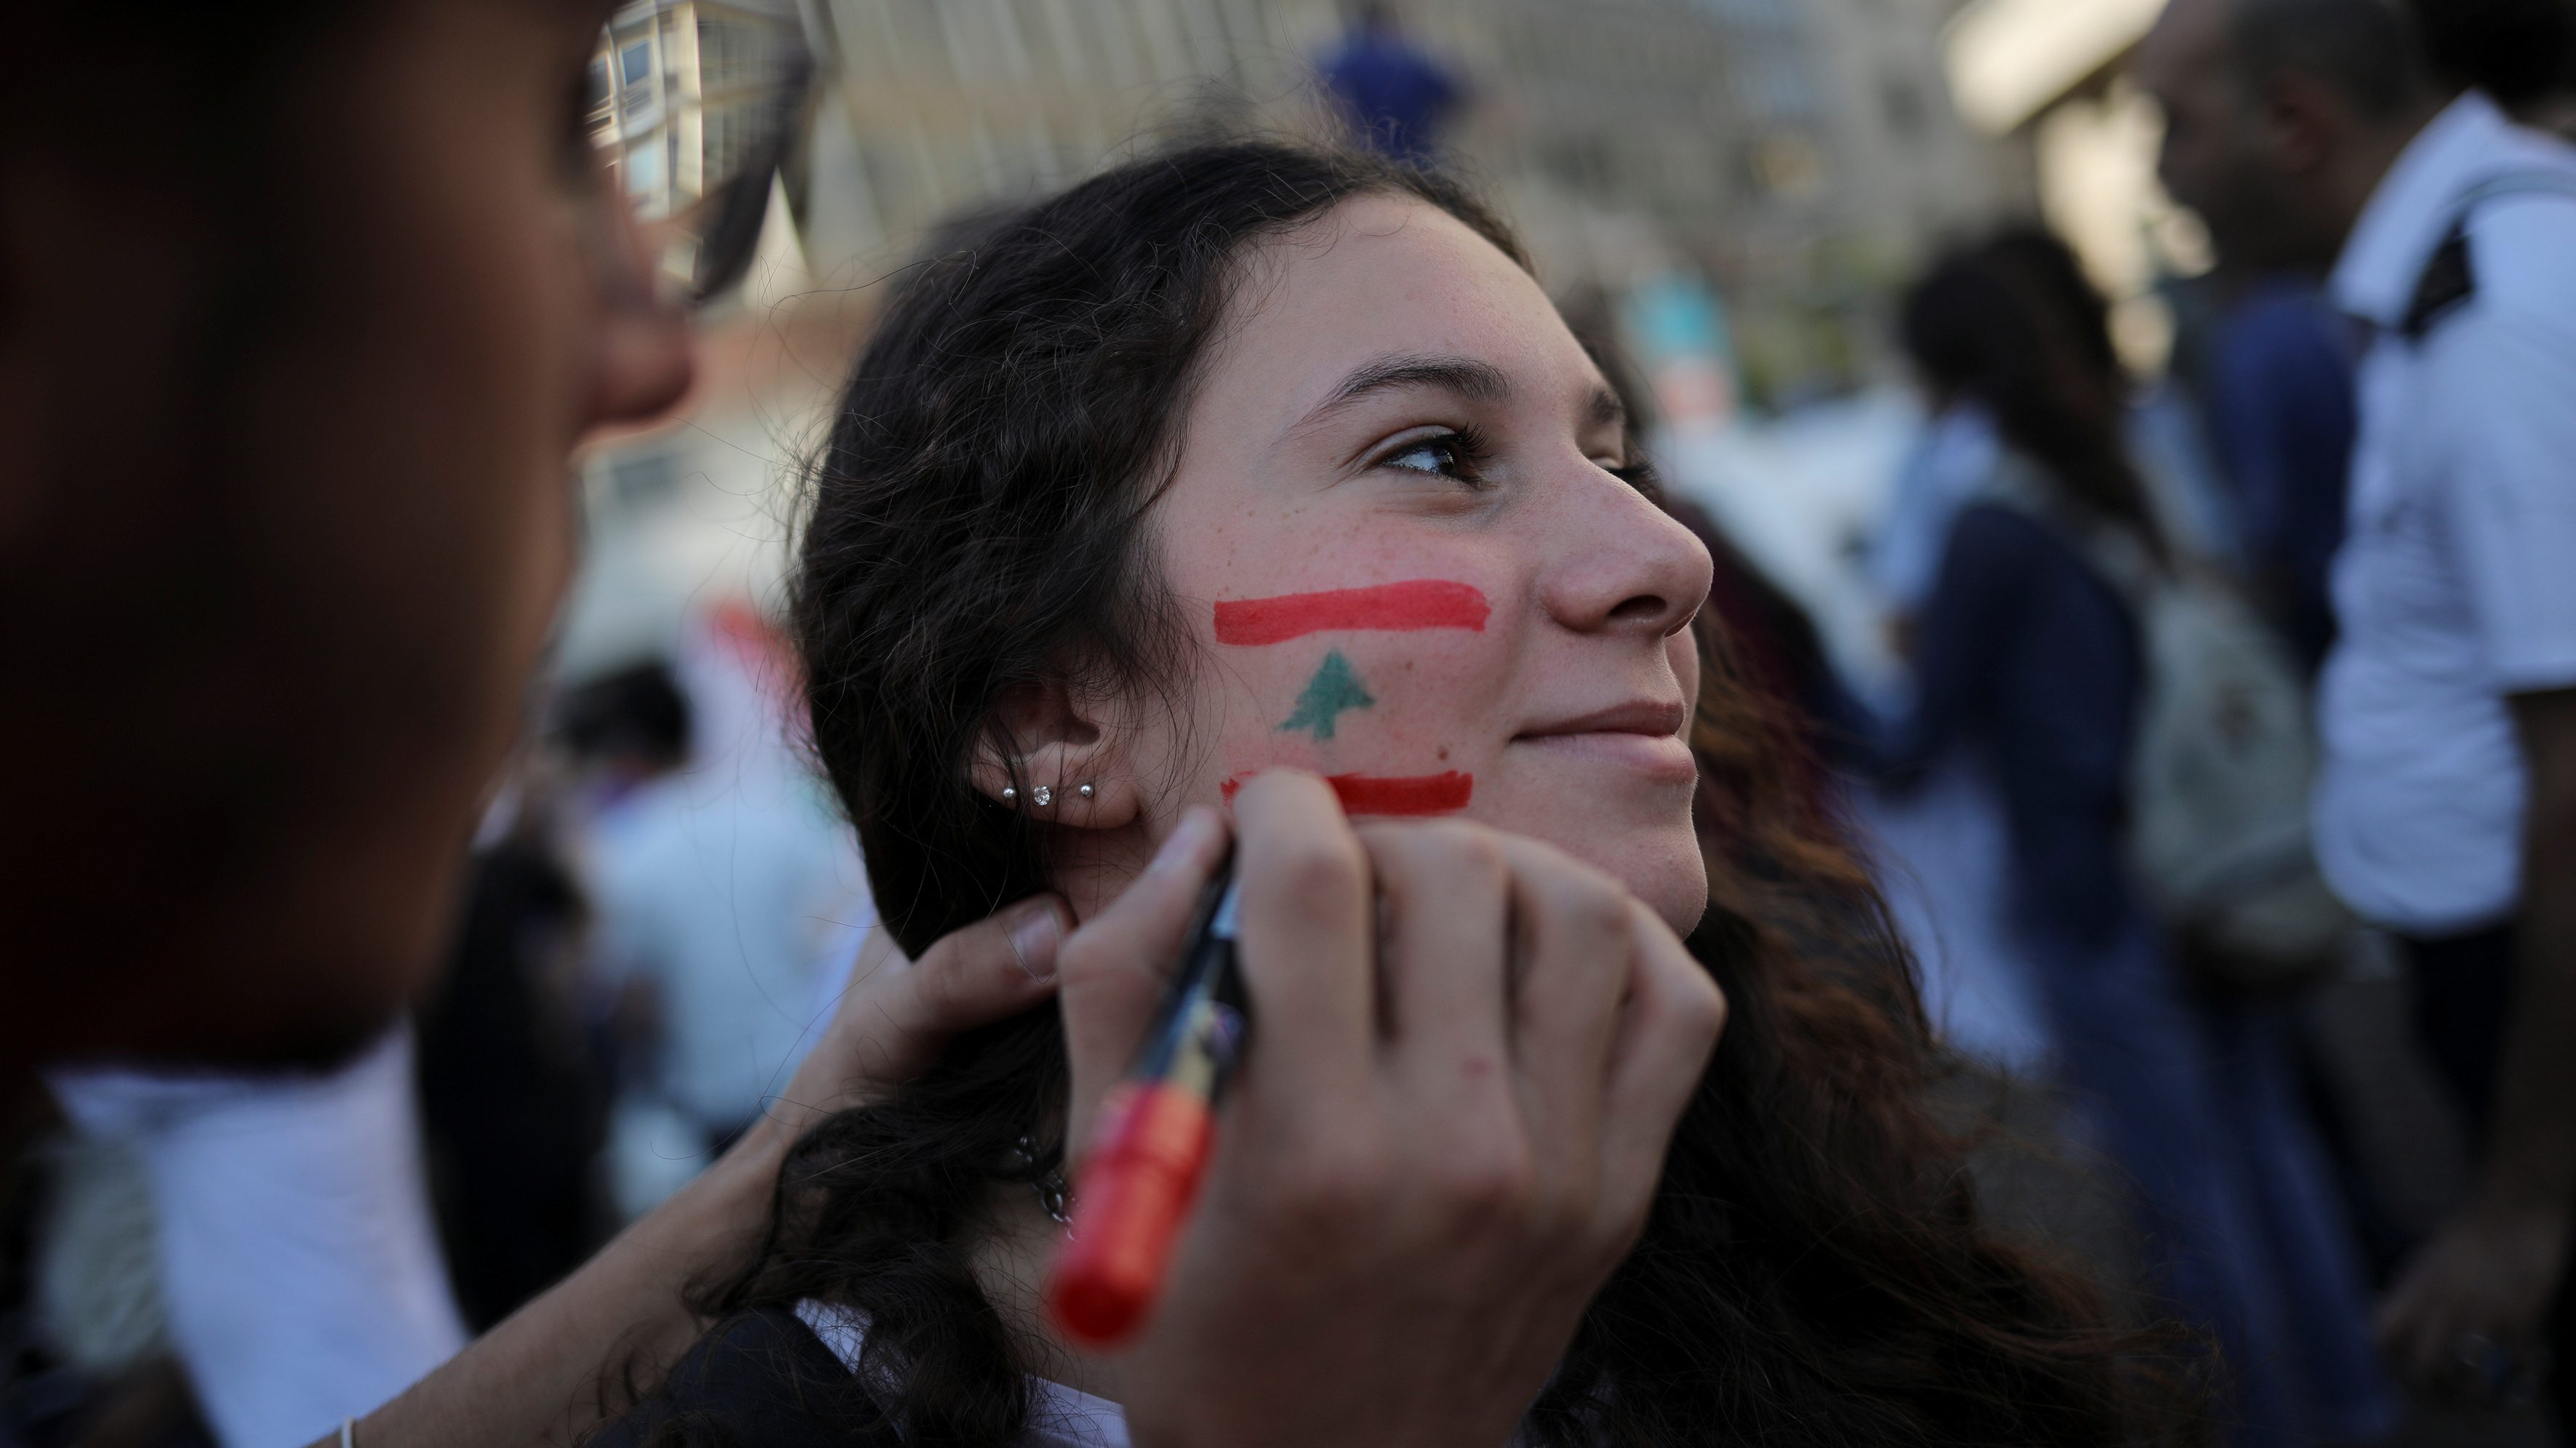 A demonstrator has her face painted in the colours of the Lebanese flag during an anti-government protest in downtown Beirut, Lebanon October 22, 2019. Picture taken October 22, 2019.